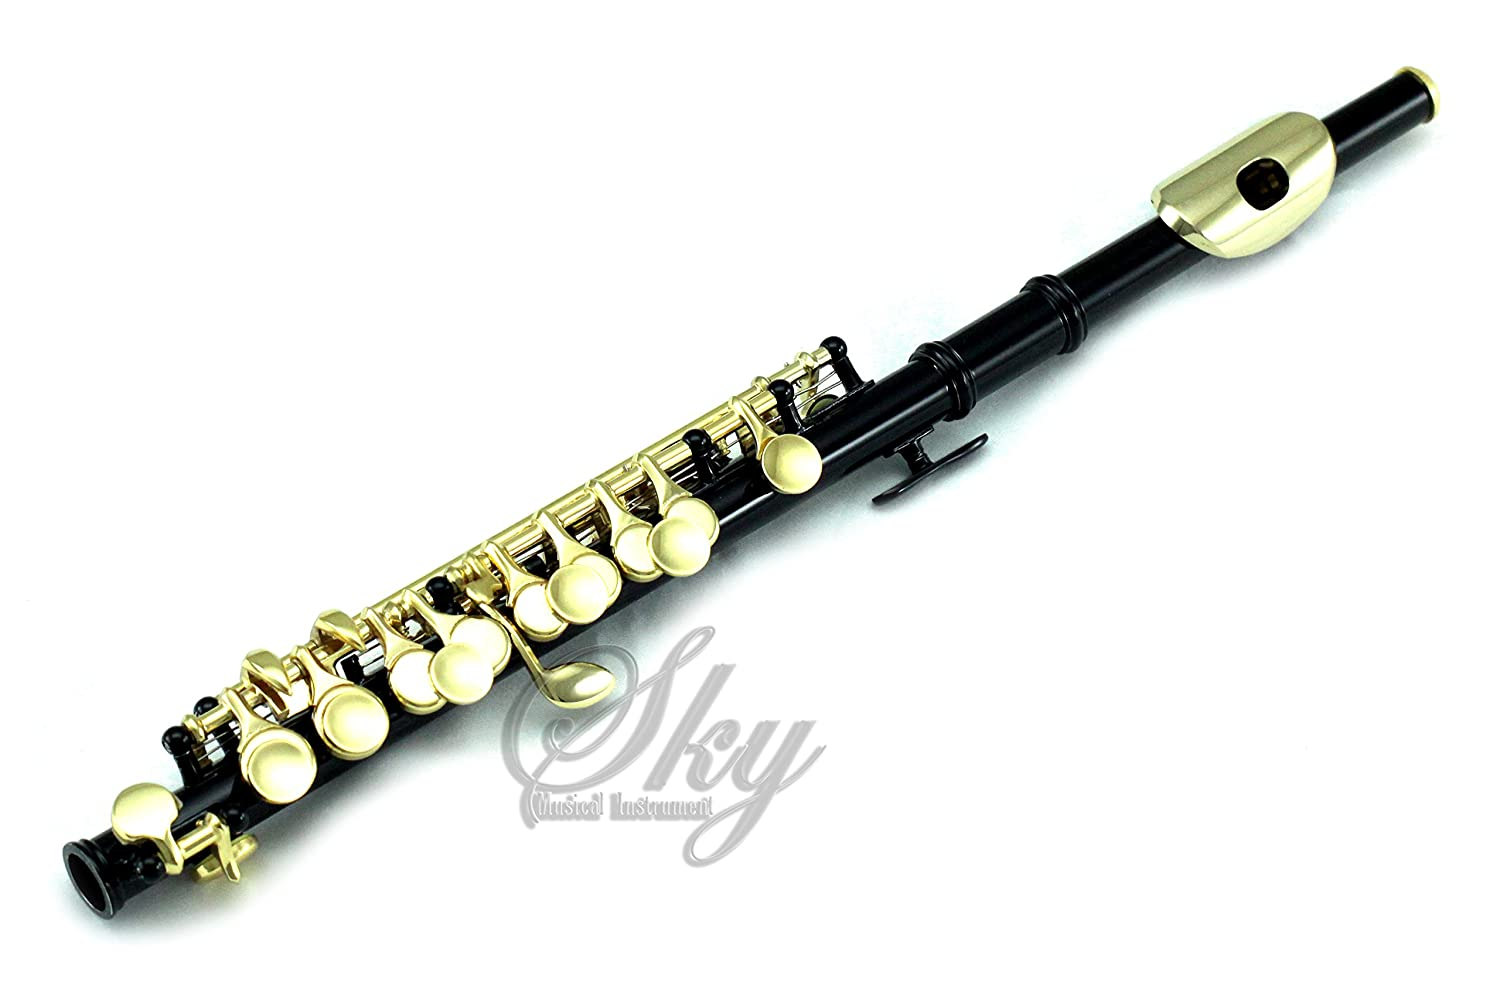 Sky Band Approved Black Laquer with Gold KeysPiccolo Key of C with Hard Case, Cloth, Cleaning Rod, Joint Greasae and Screw Driver, Guarantee Top Quality Sound 762022613285